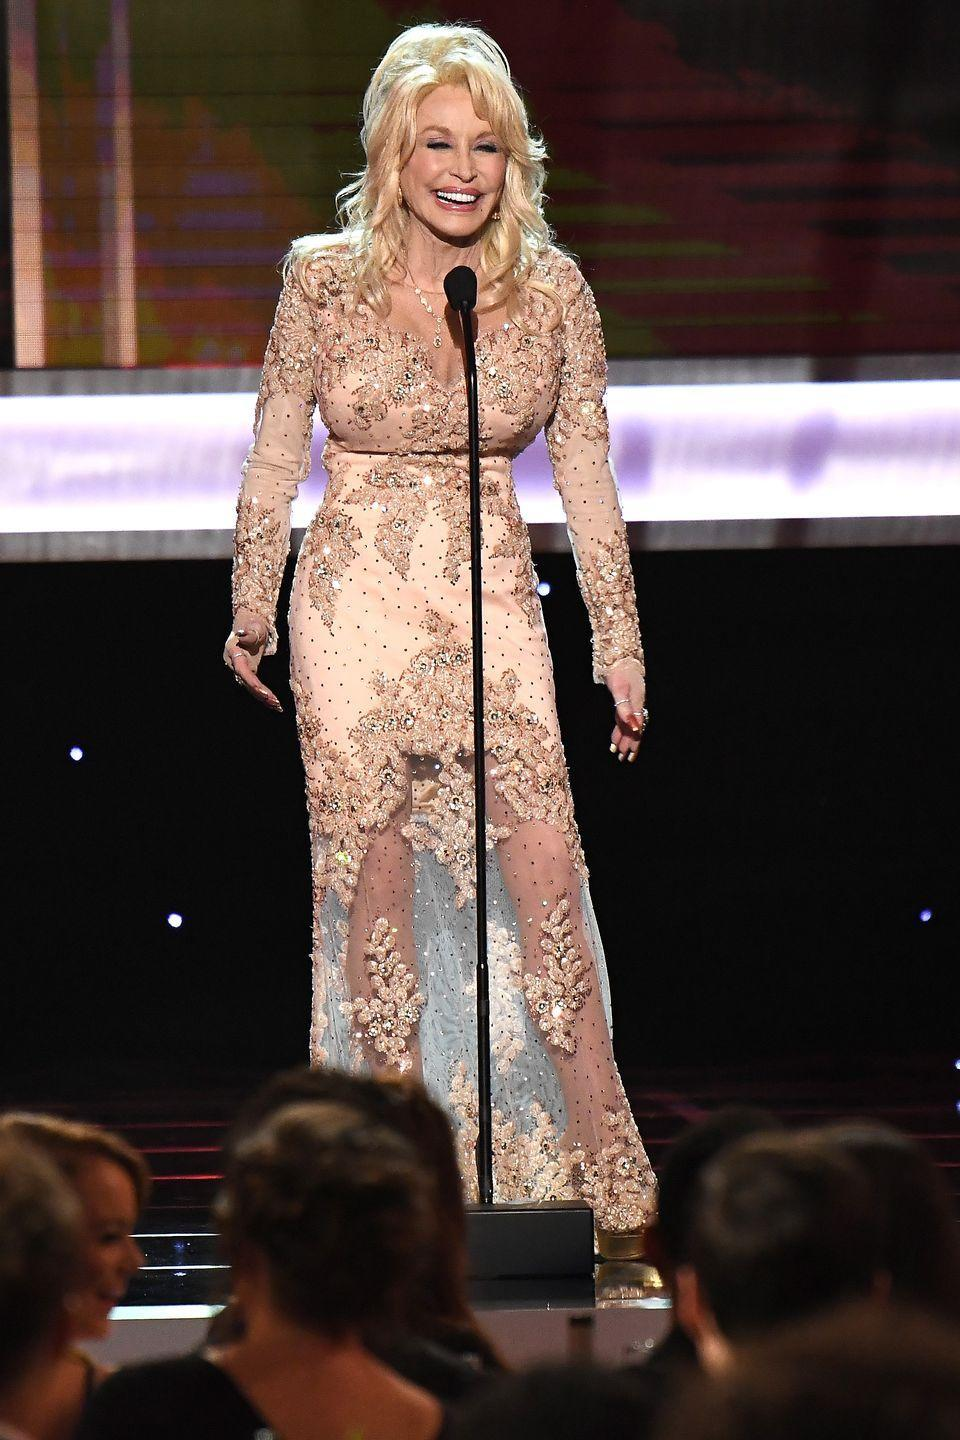 <p>Dolly delights the audience at the 23rd Screen Actors Guild Awards in 2017. Here, country glamour is perfected with this beaded, lacy ensemble in a peachy-keen hue. </p>